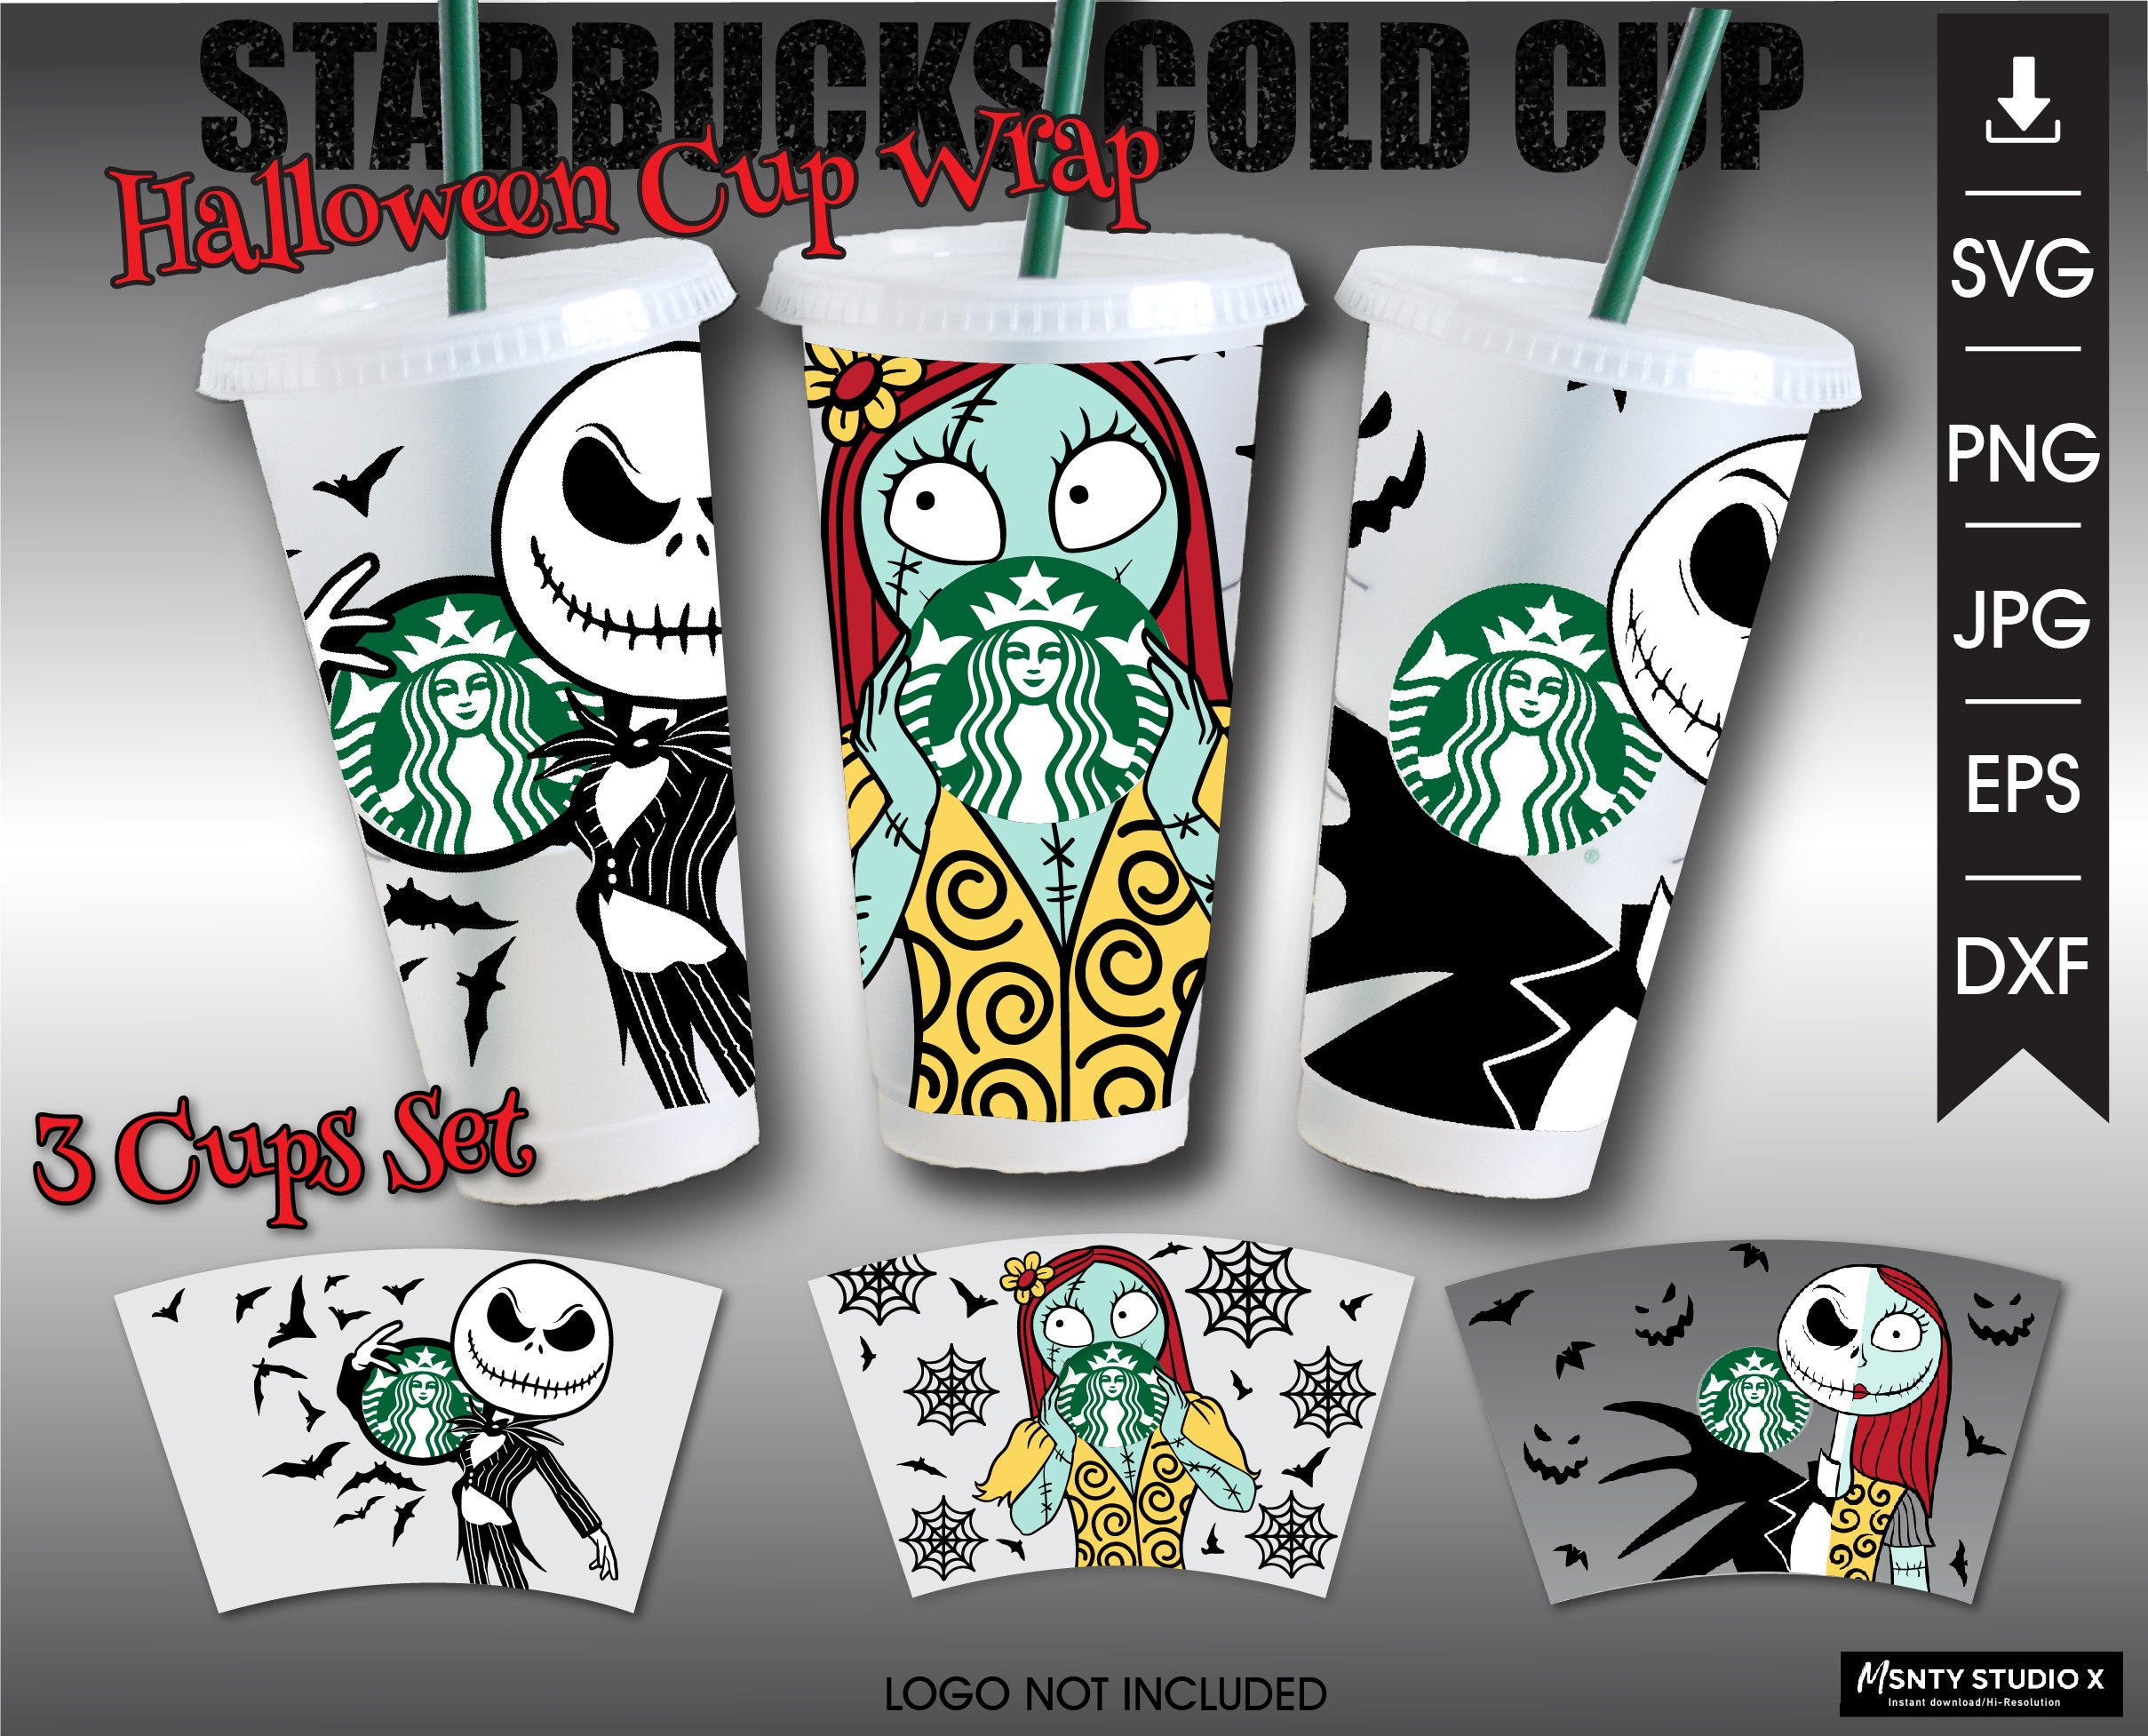 Full Wrap 3 Cups Set of Jack And Sally Starbucks Cold Cup SVG, Starbucks Venti 24 oz, Cold Cup,Halloween cup svg,Digital download Cut file